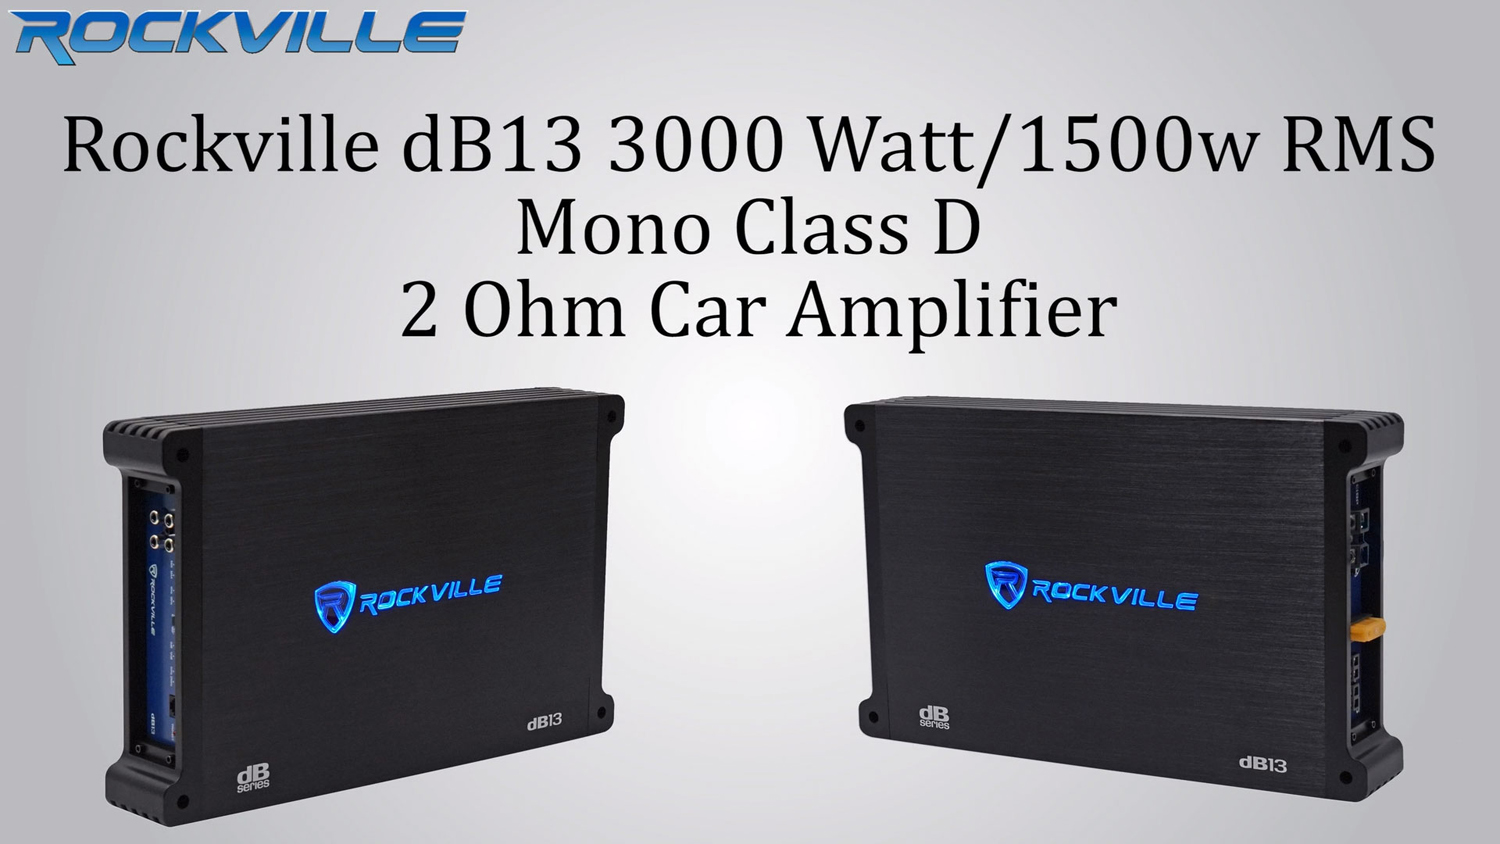 2 NYC Acoustics NC12S4 3200w 12 LED Subwoofers+Vented Sub Box+Amplifier+Wires